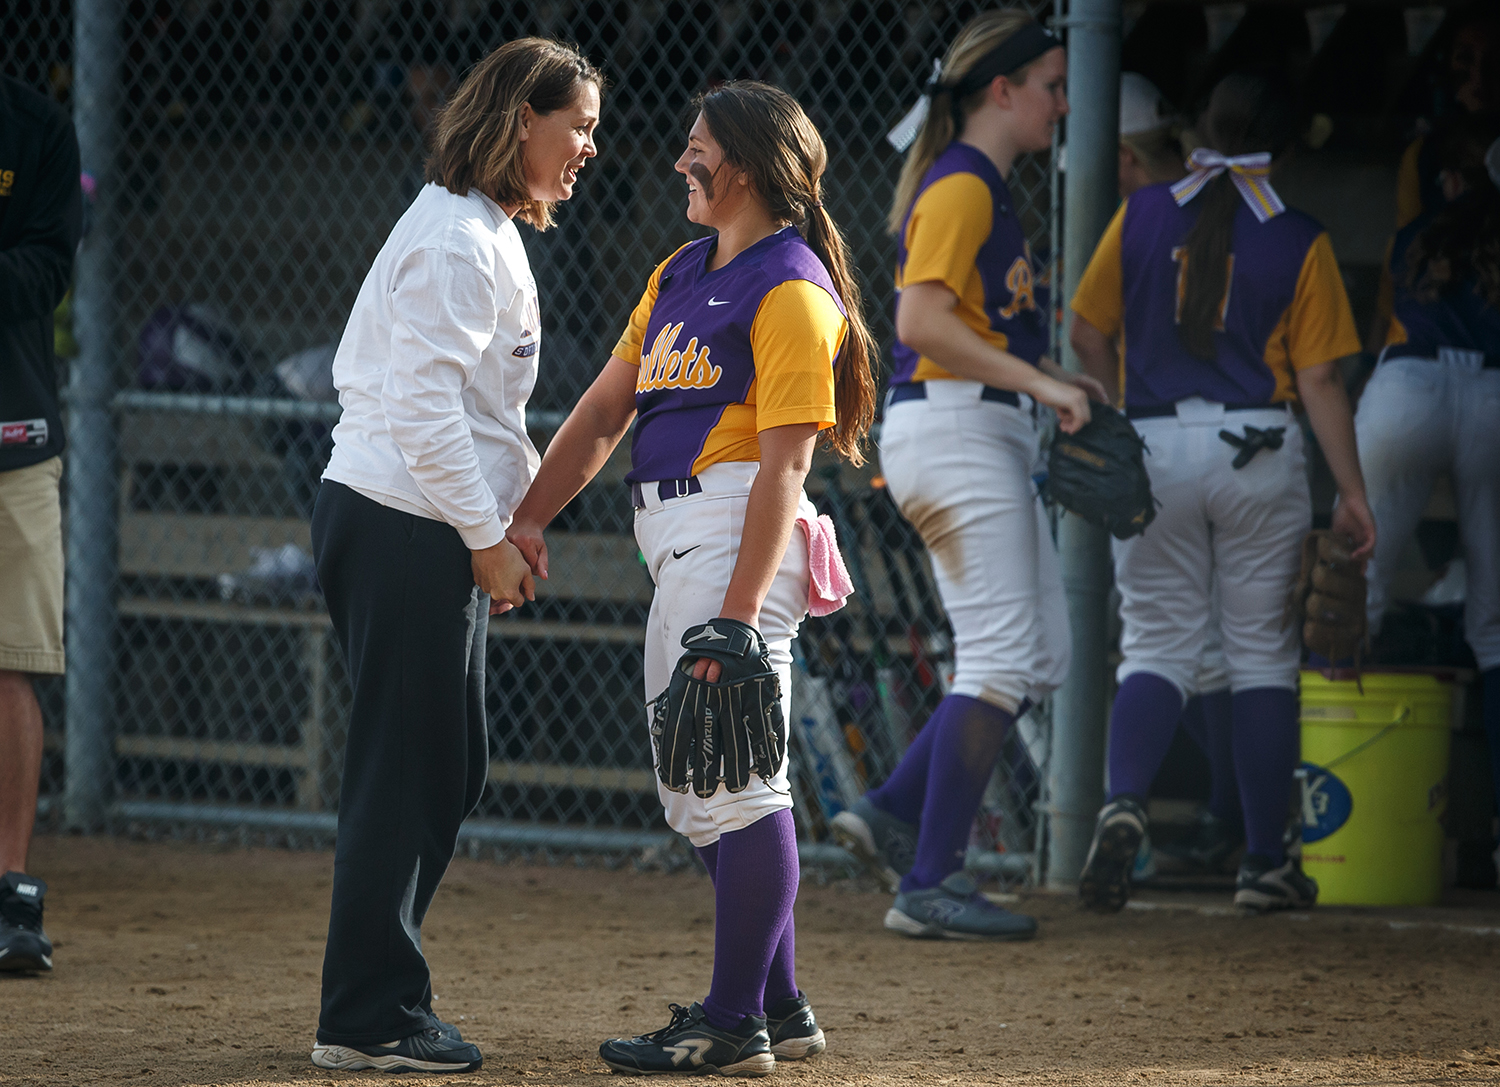 Williamsville coach Mindy Ashbaugh talks with Payton Long after Long had pitched her way out an inning during the Class 2A sectional game against Dupo at Jane Grebner Field in Williamsville May 24. Justin L. Fowler/The State Journal-Register